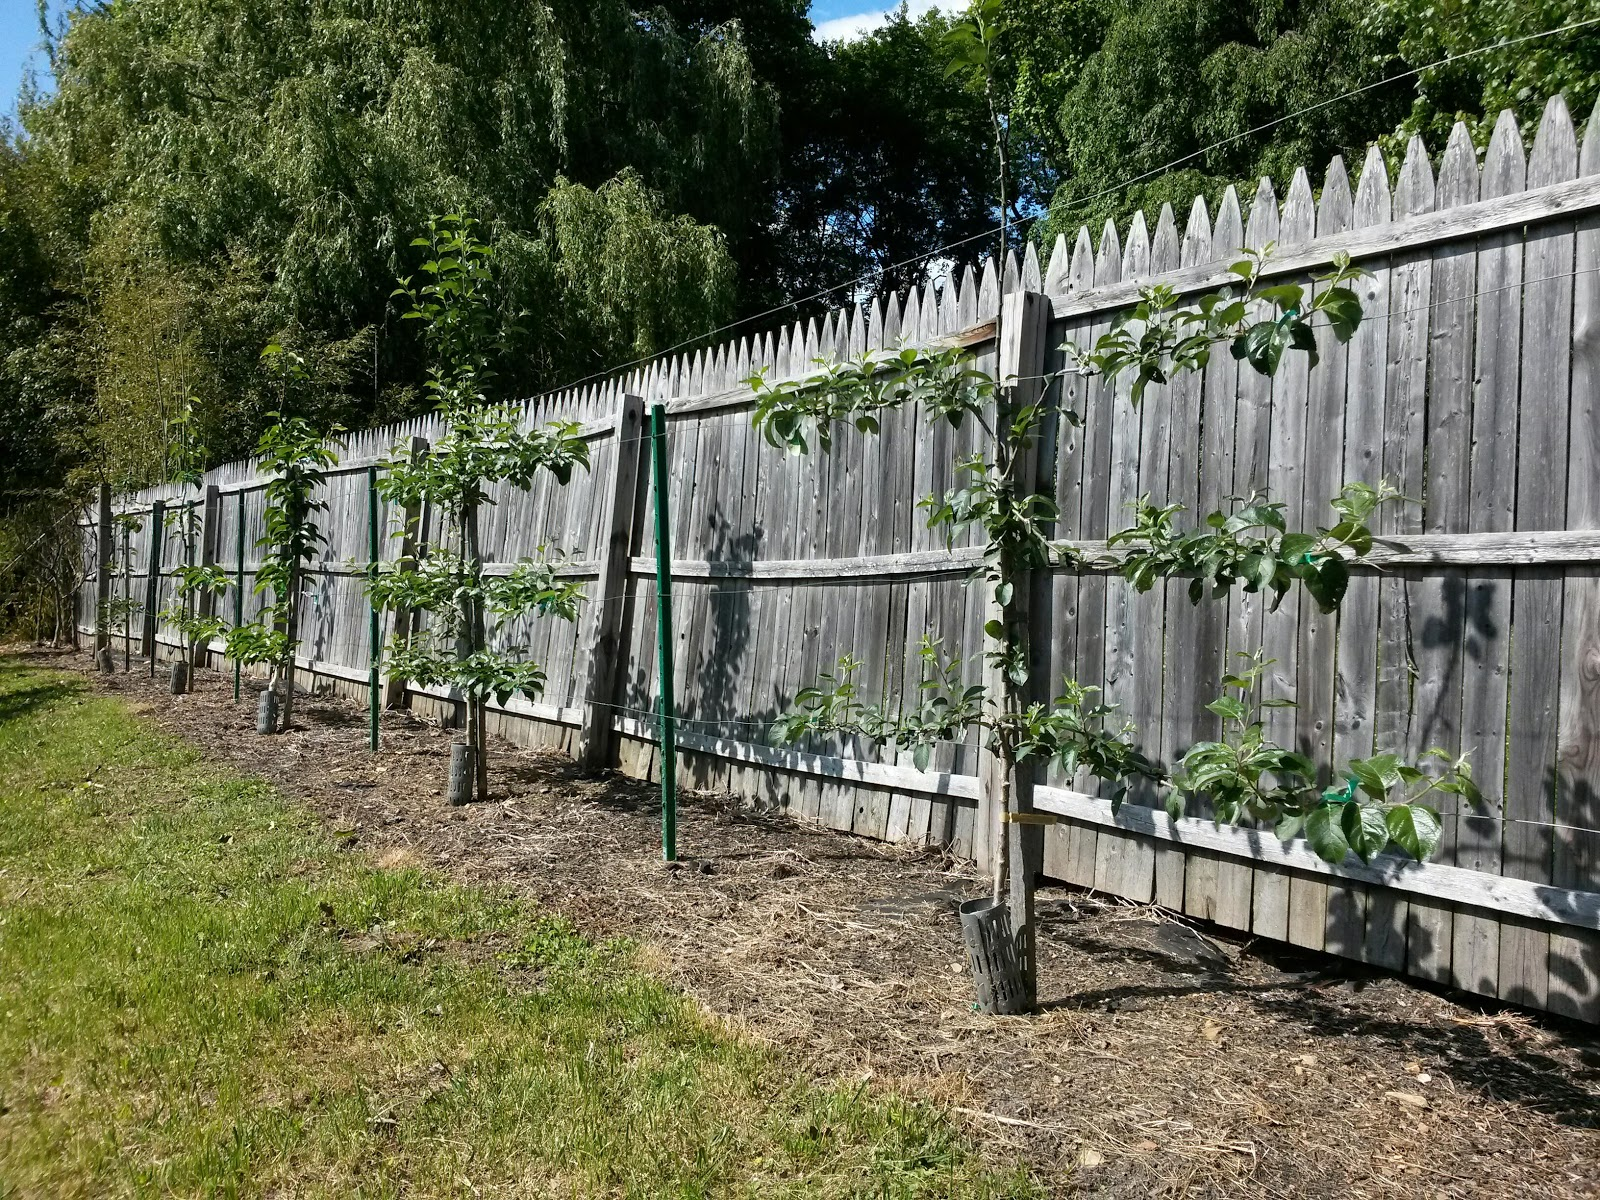 How to Espalier Fruit Trees - Stark Bro's